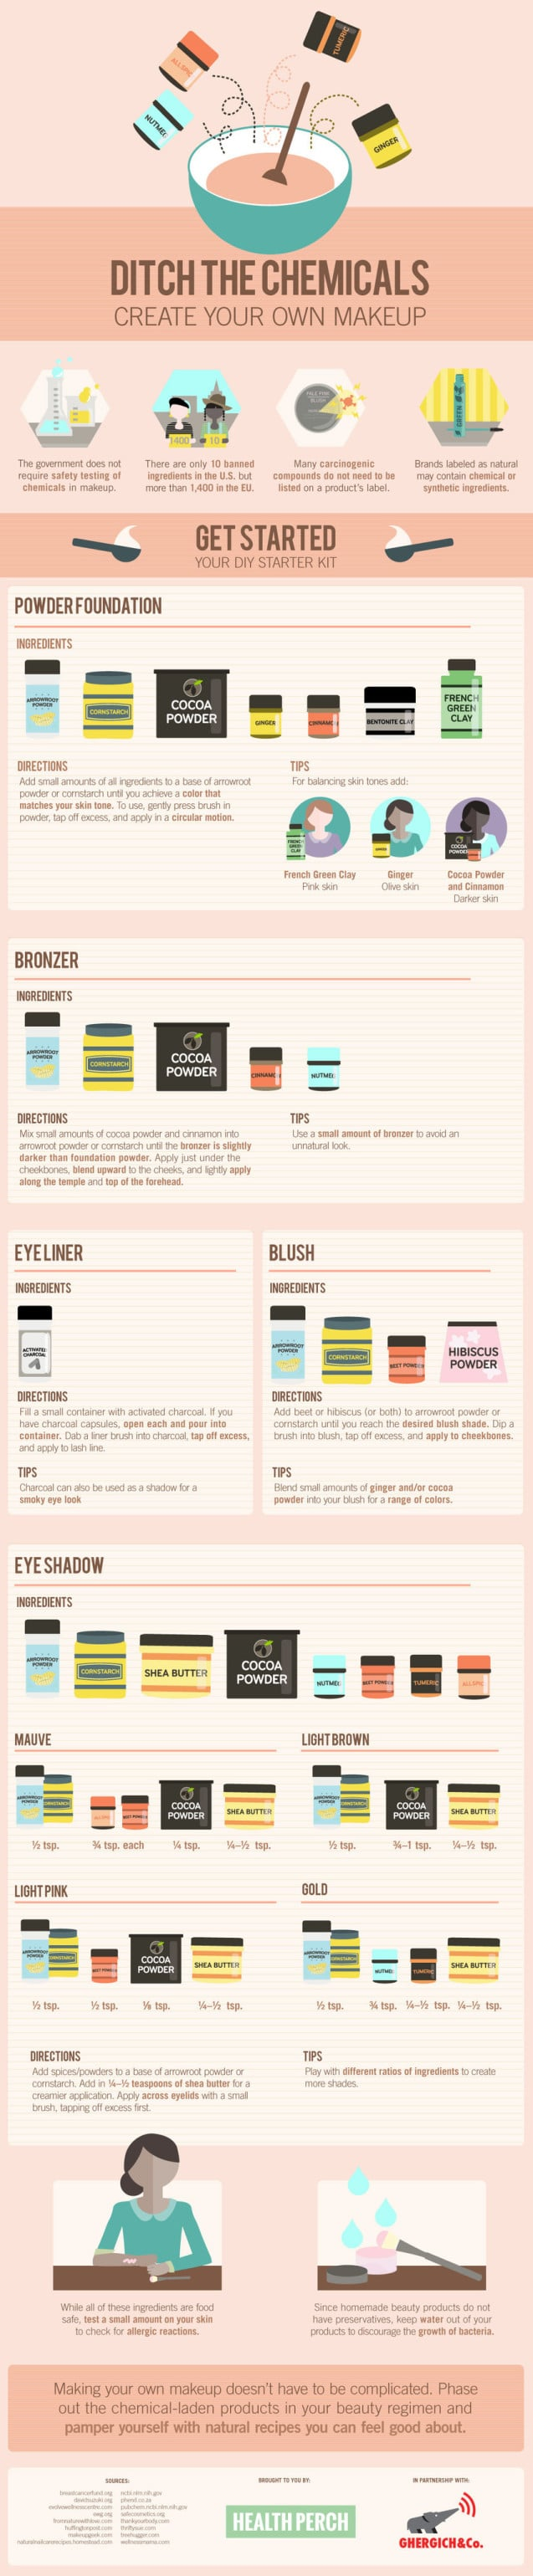 Ditch the chemicals and create your own makeup